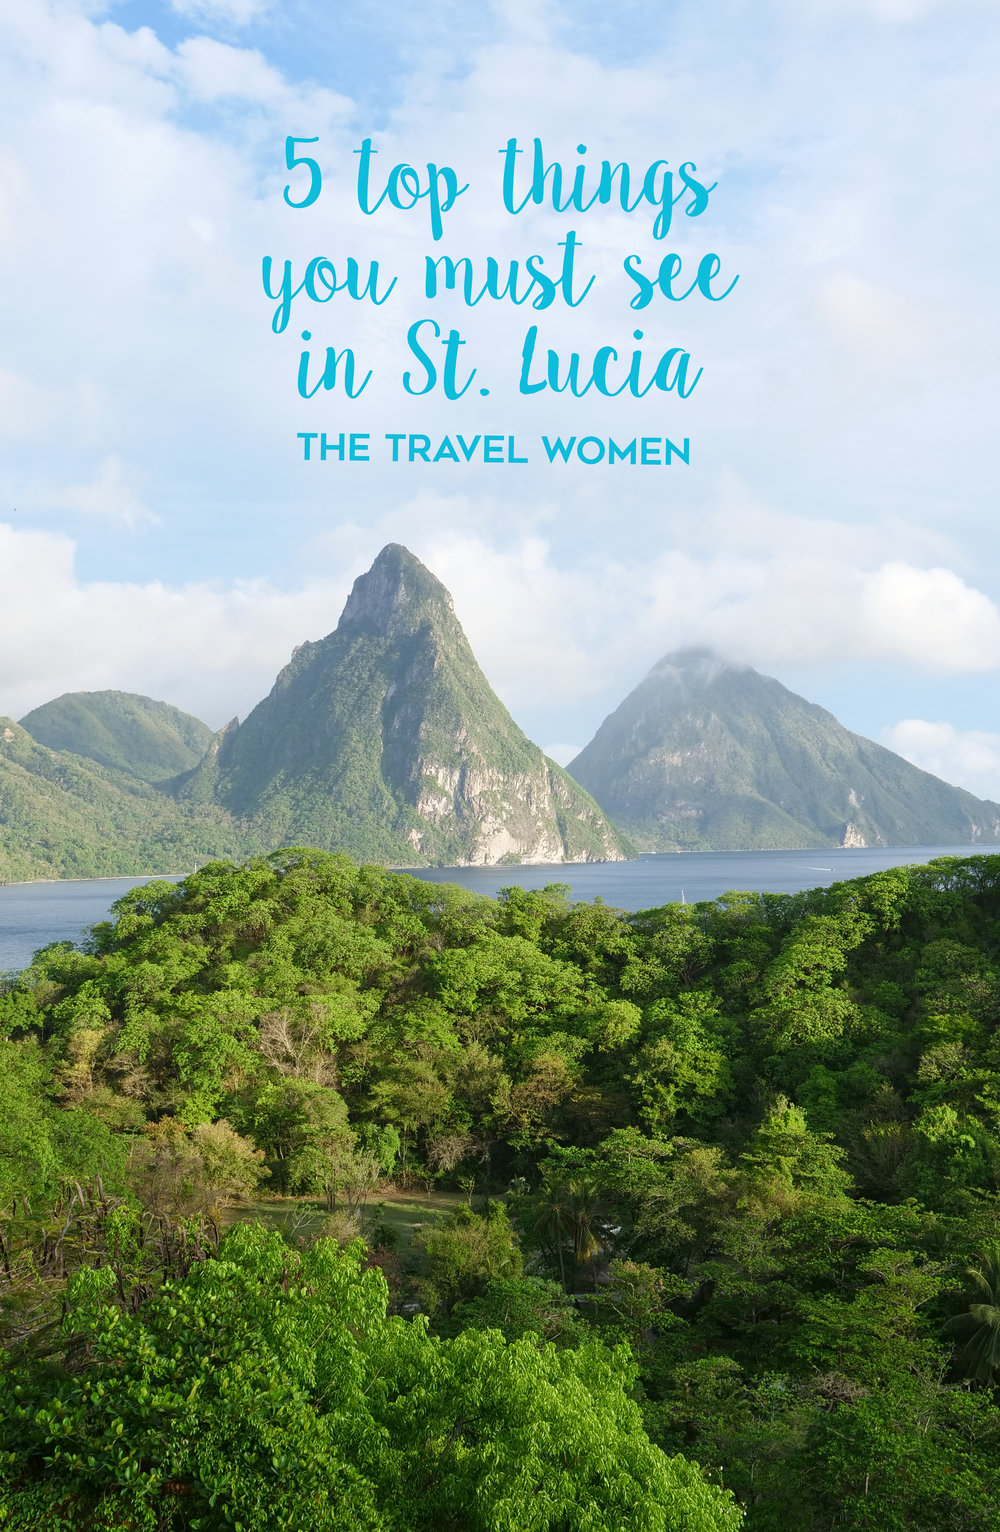 5 top things you must see in st lucia